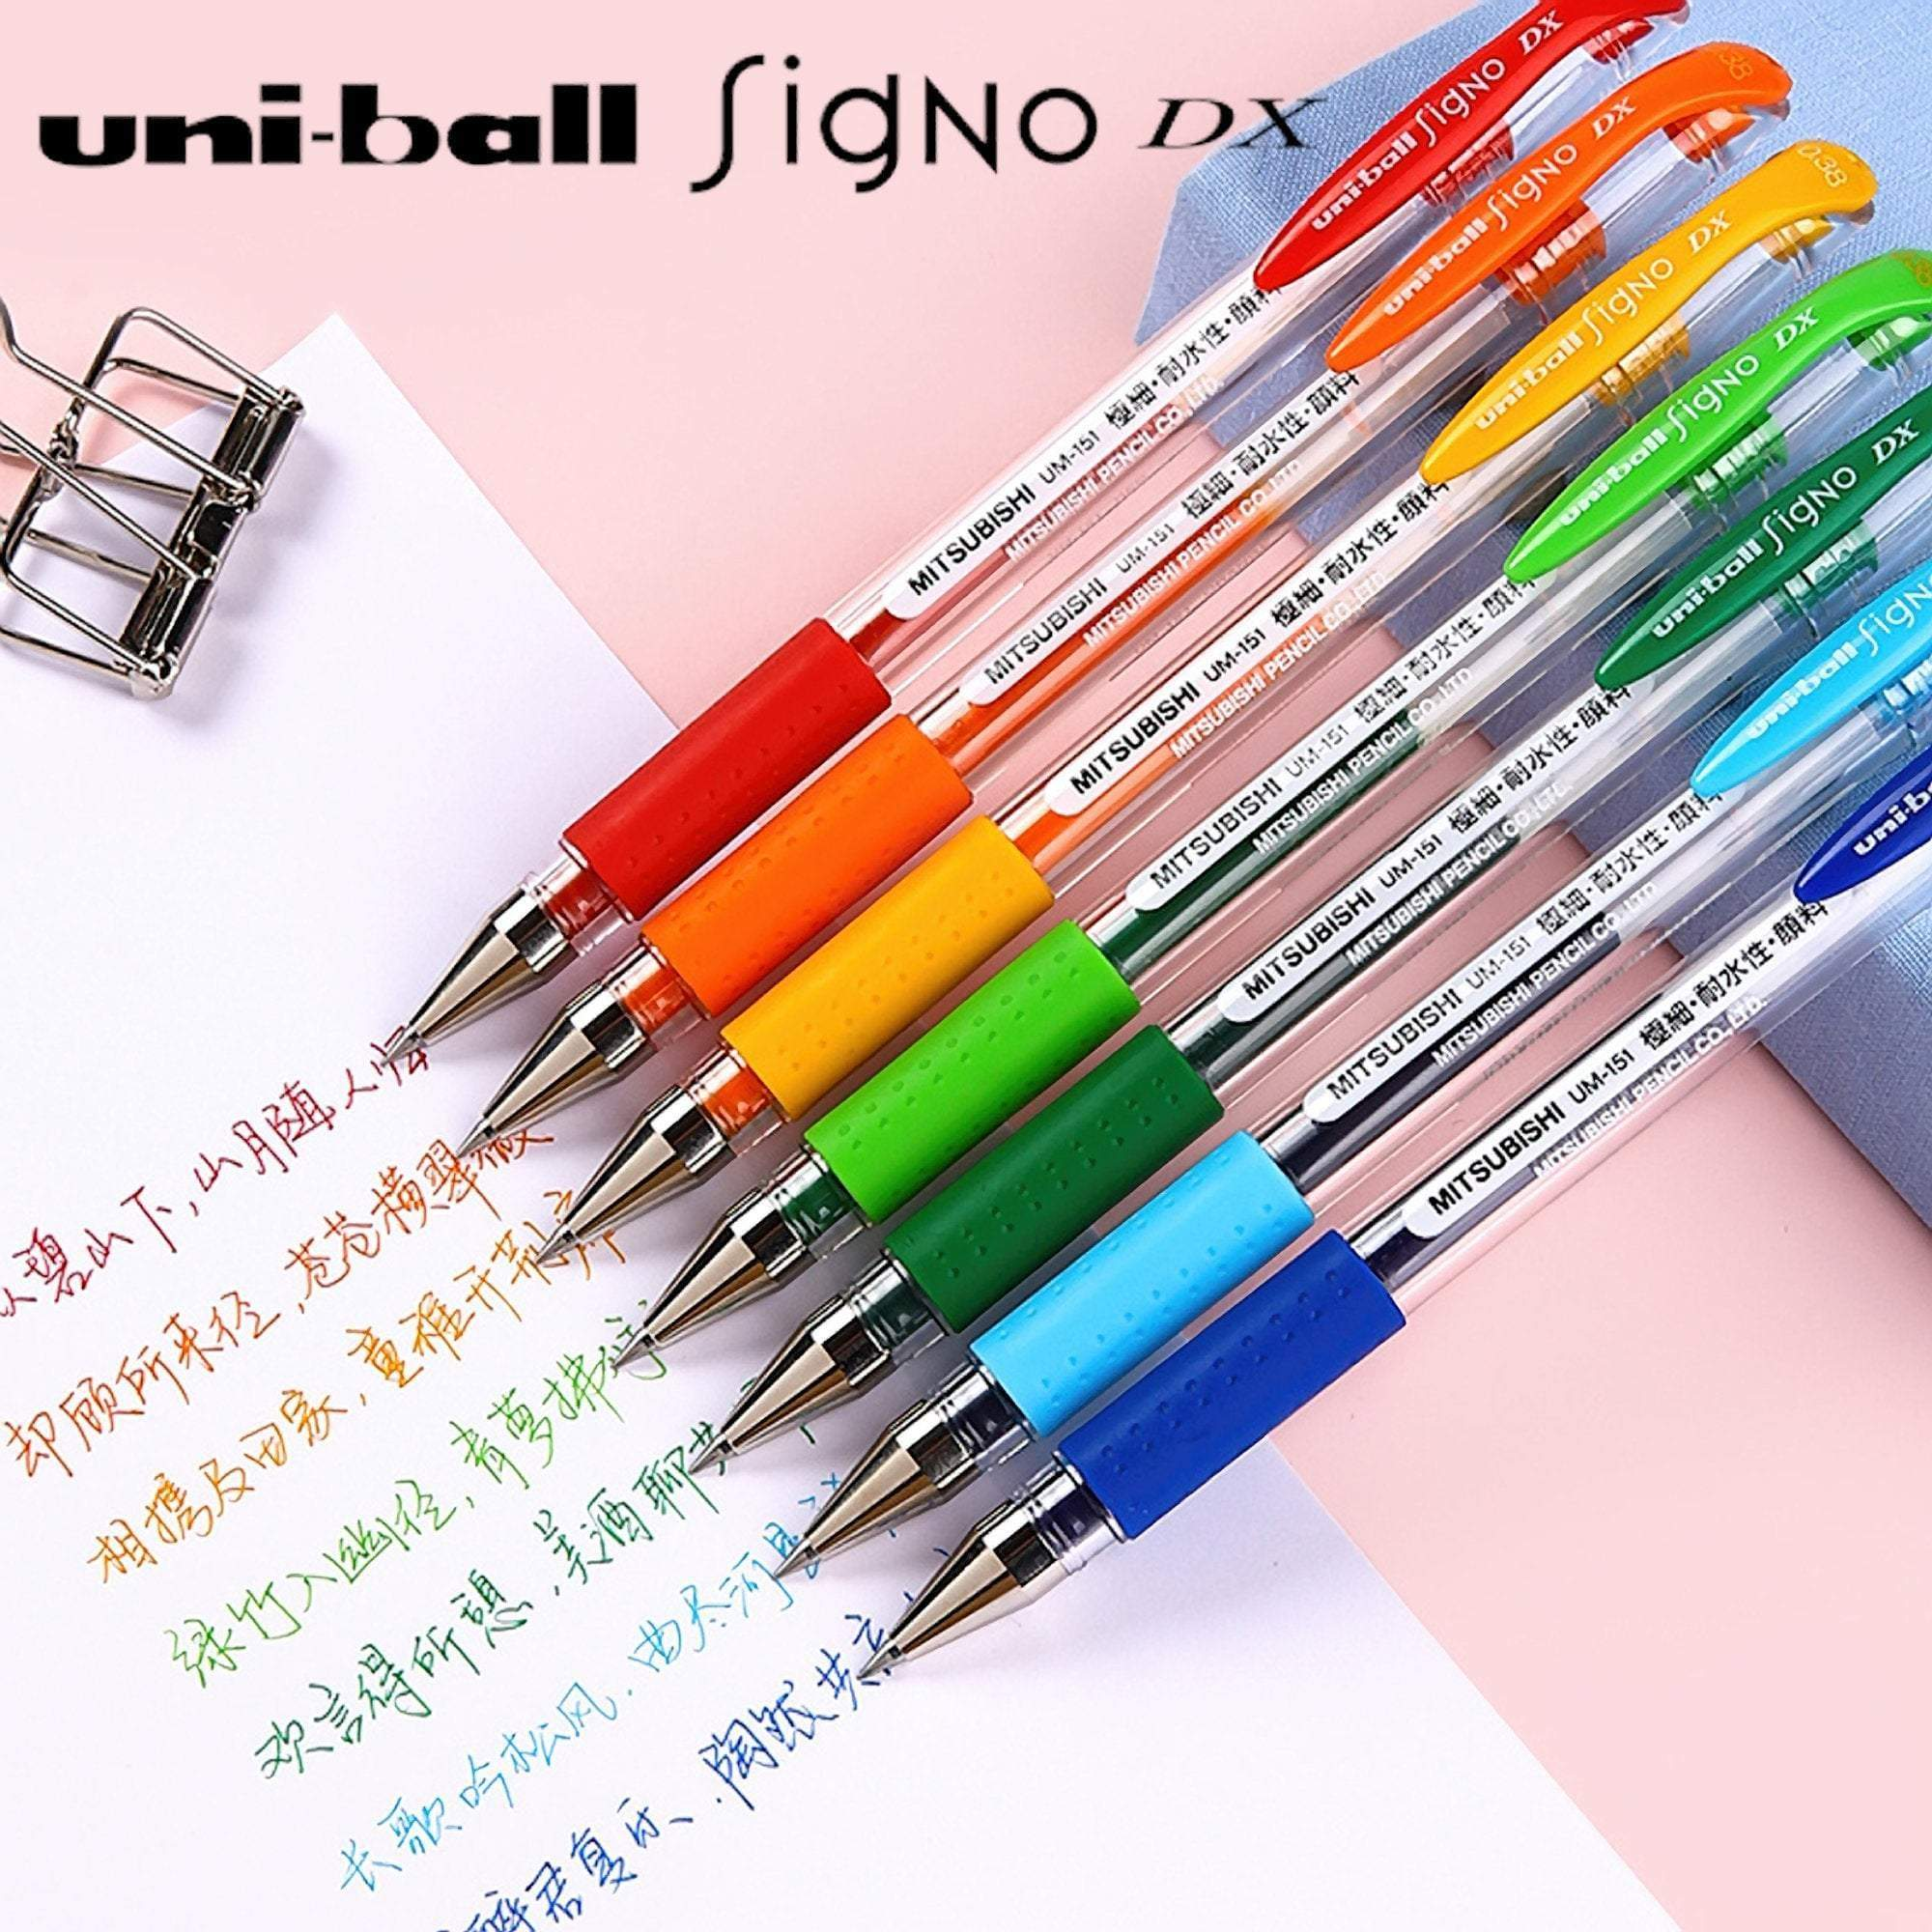 Uni-ball Signo UM-151 Gel Pen APRICOT ORANGE | 0.38 mm - The Stationery Life!